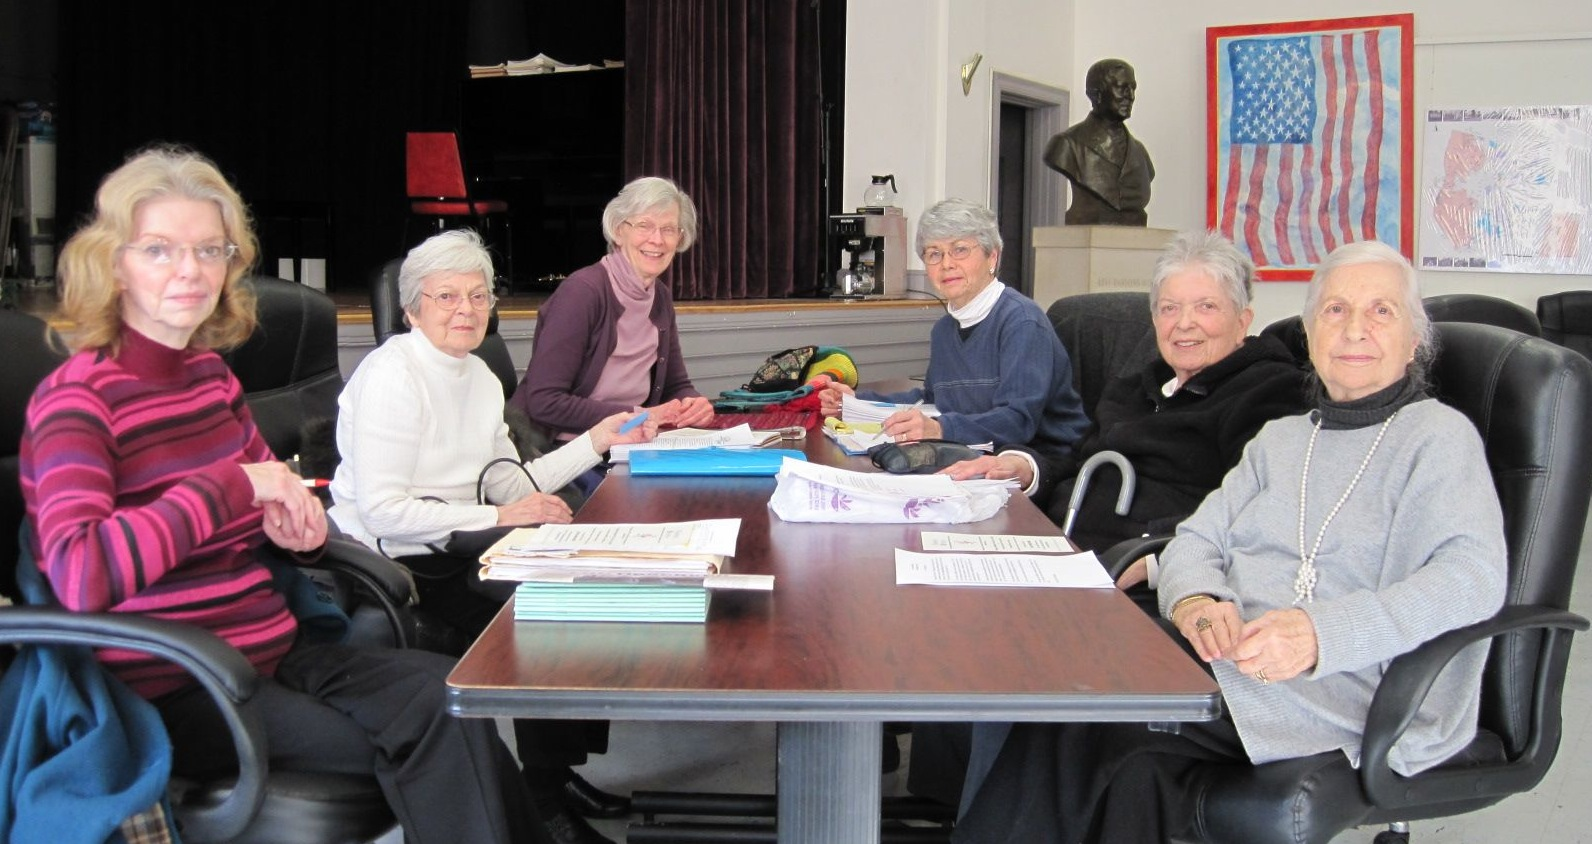 Members of the Rhinebeck Committee on Aging, from left to right: Marsha DeBlasi, Yolanda Kaake,  Nina Lynch, Doris McKibbin, Carole Lieb, Judy Blum. Not in photo: Beverly Sloane.